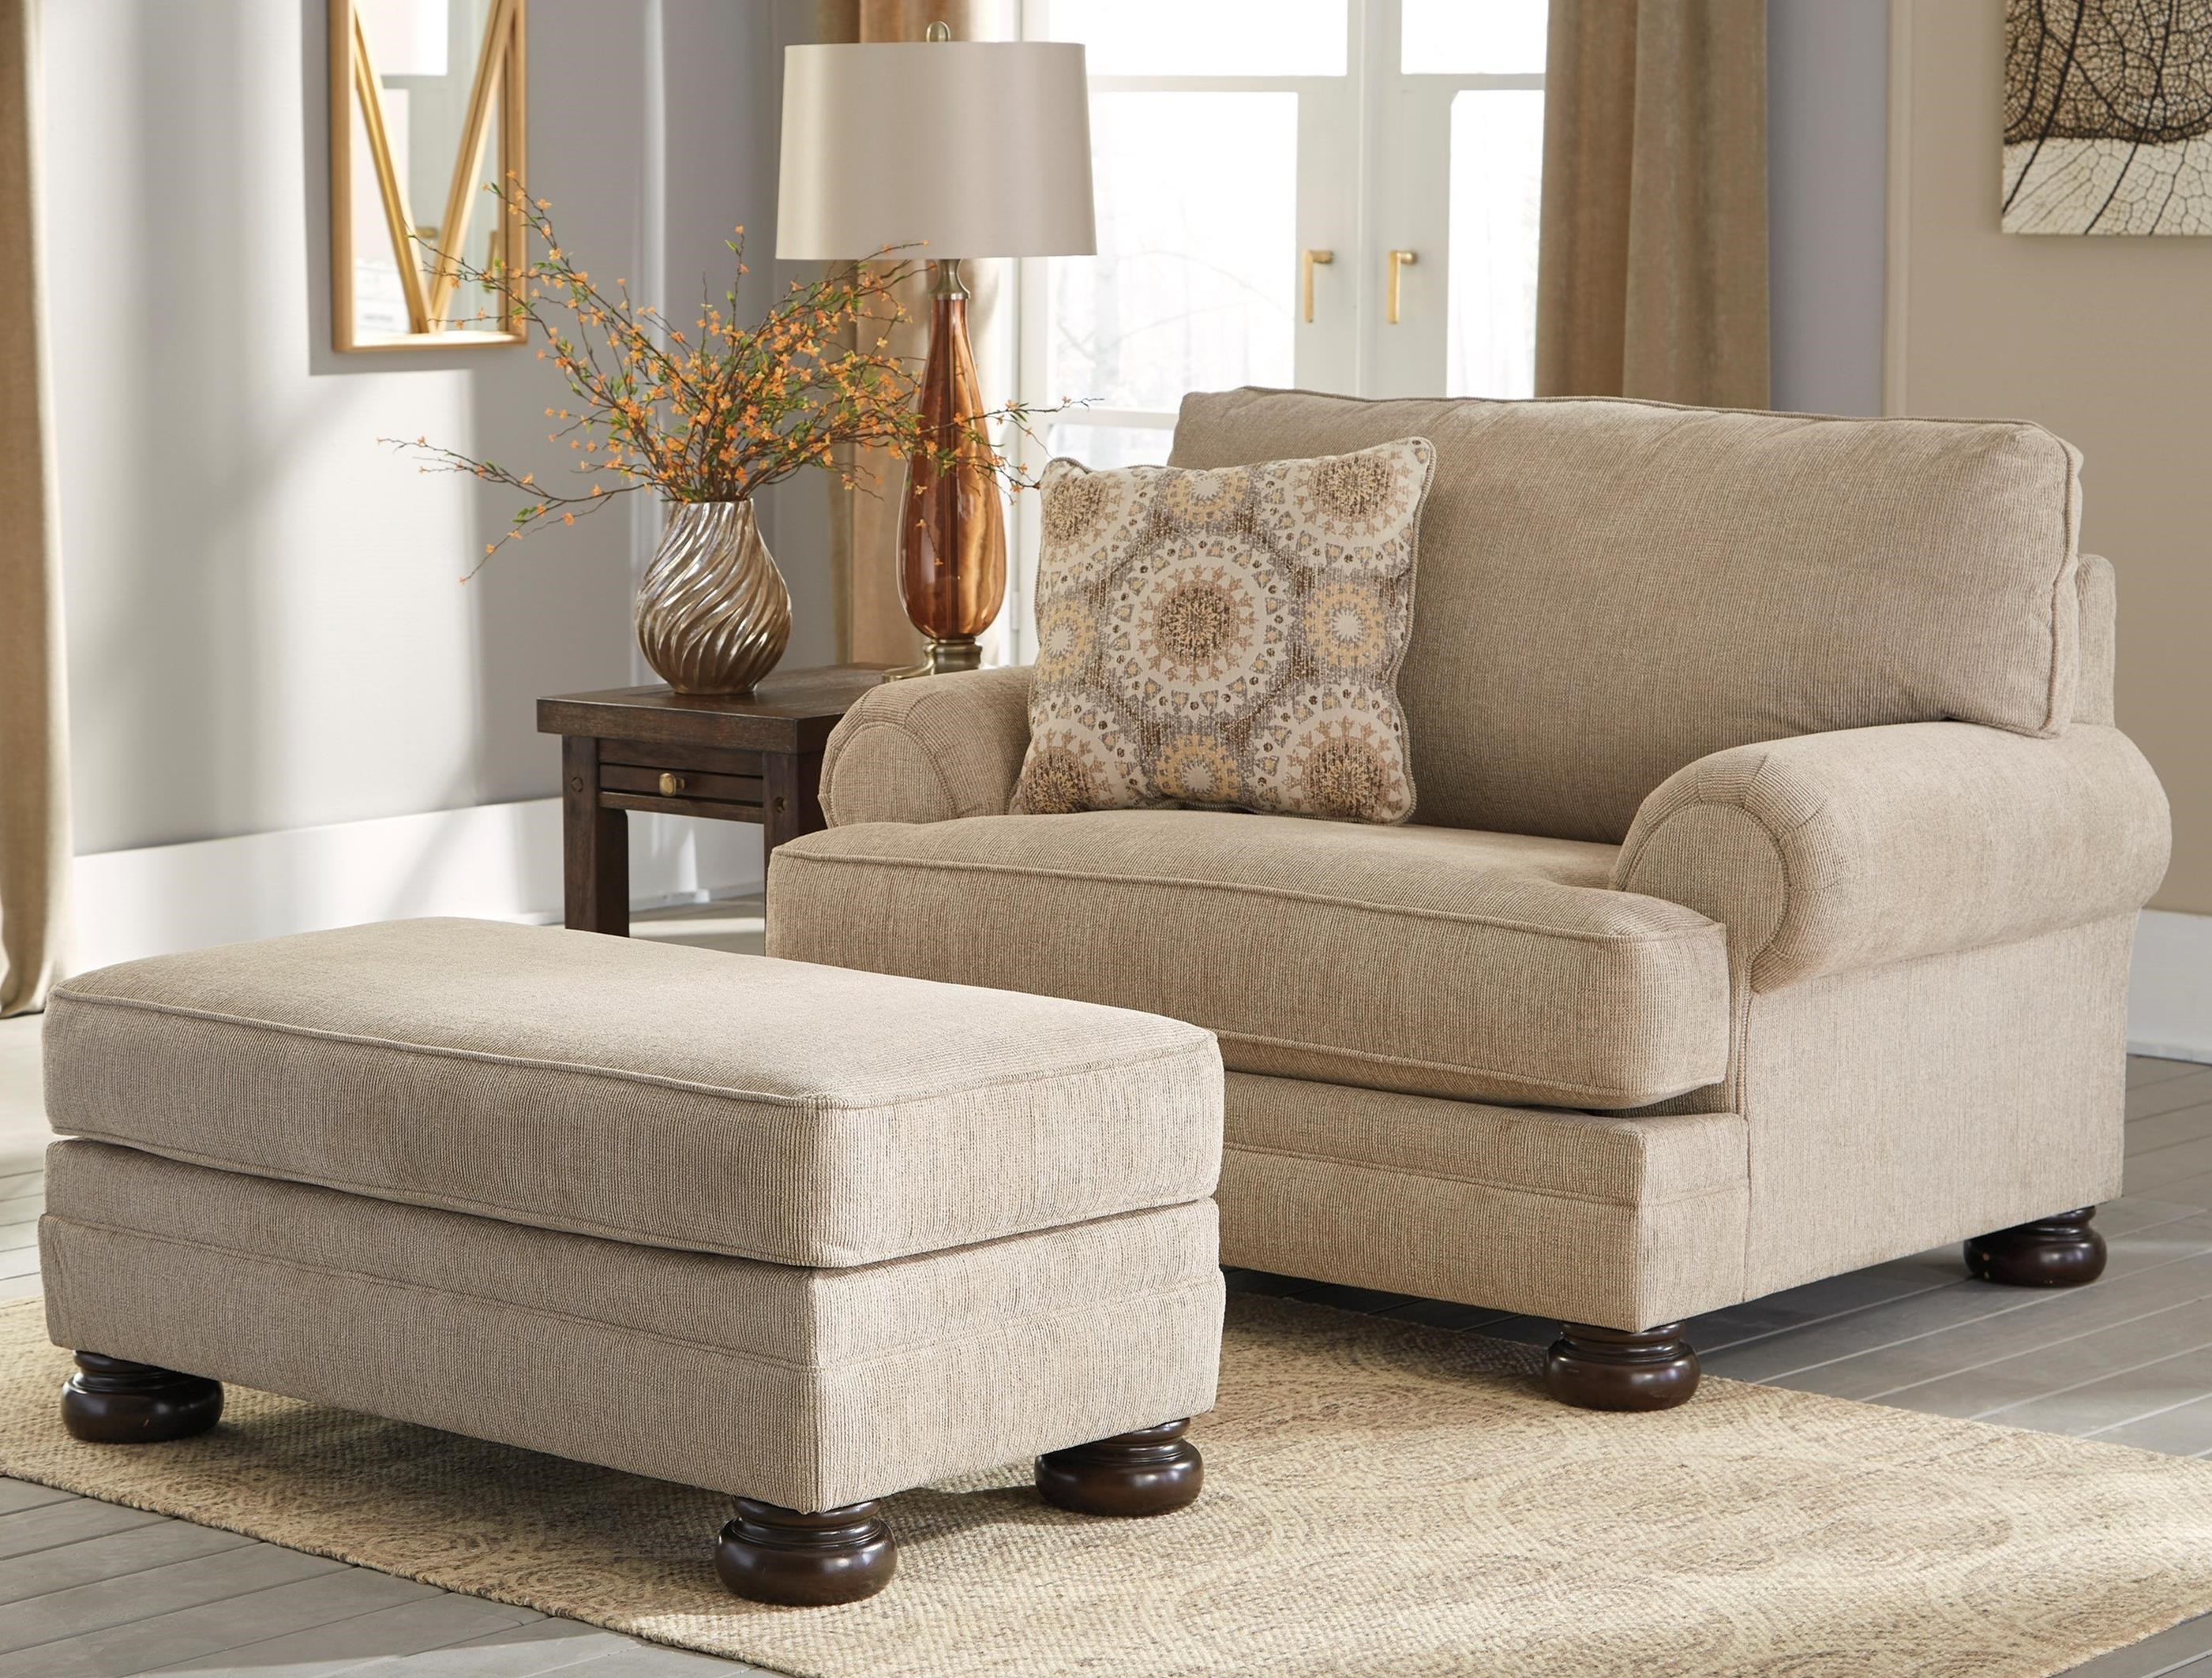 Fullsize Of Sitting Chair With Ottoman